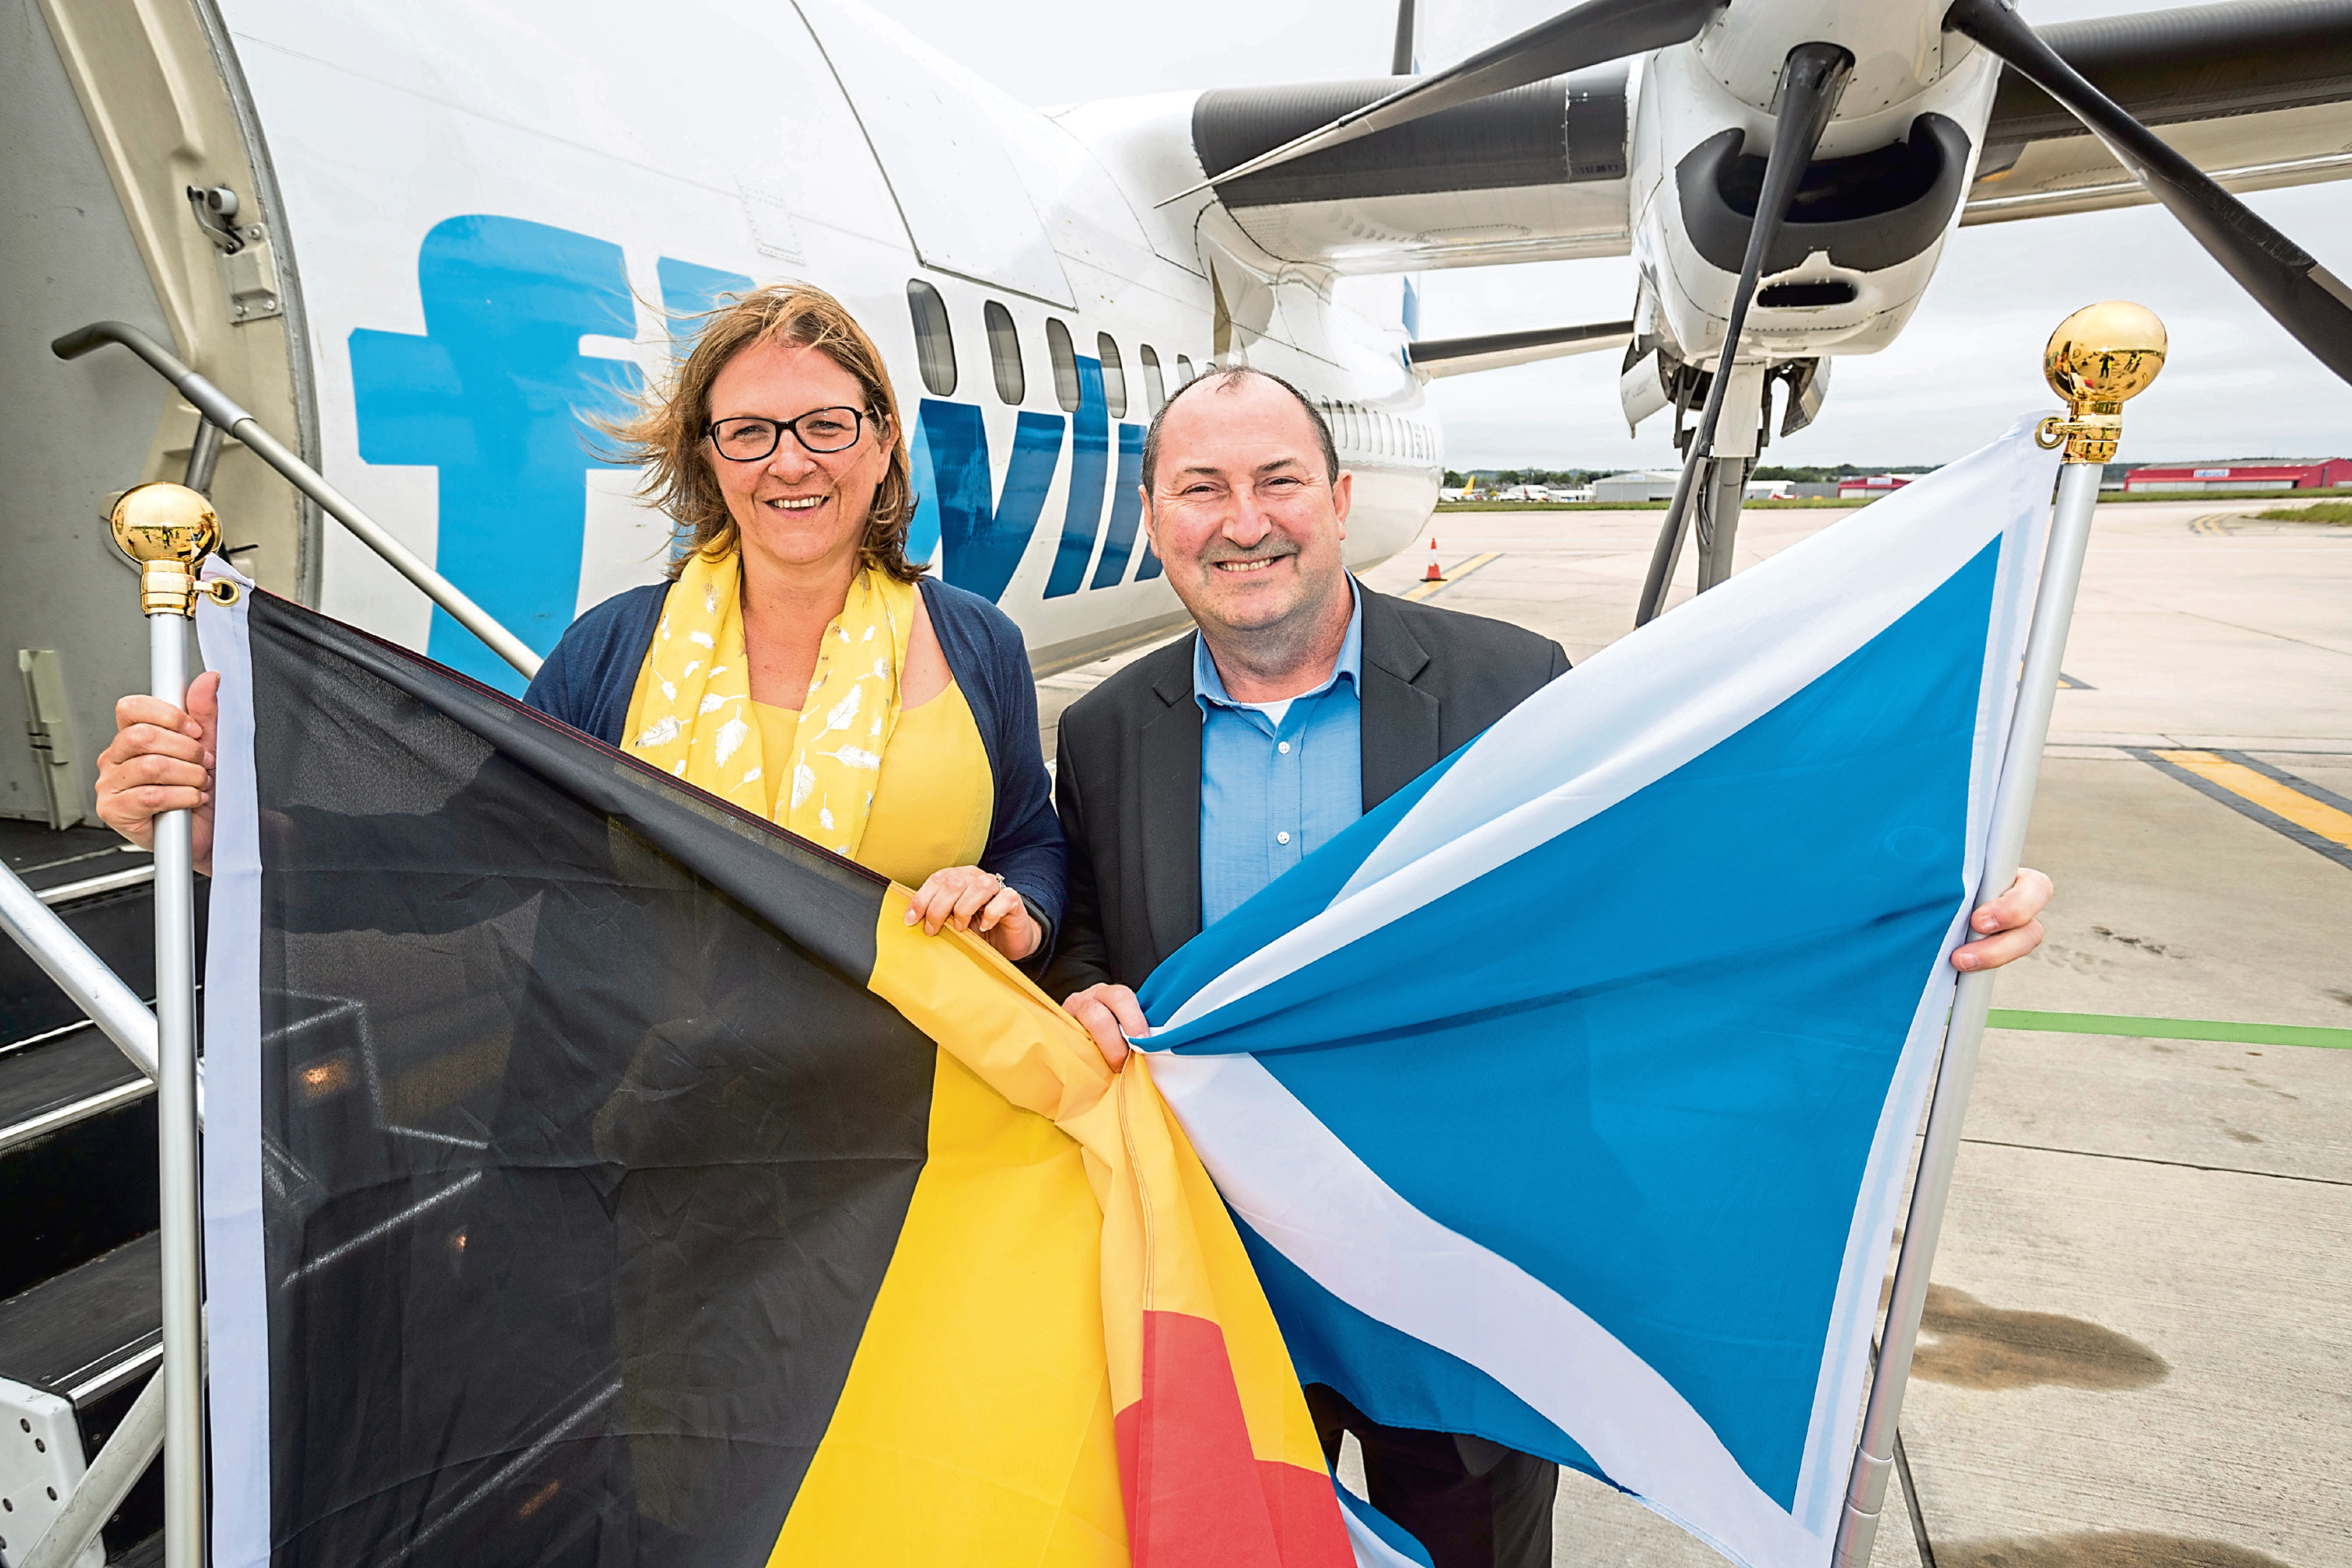 Aberdeen International Airport chief executive Carol Benzie with VLM chief information officer John Hughes, launching the Aberdeen to Antwerp route in June.